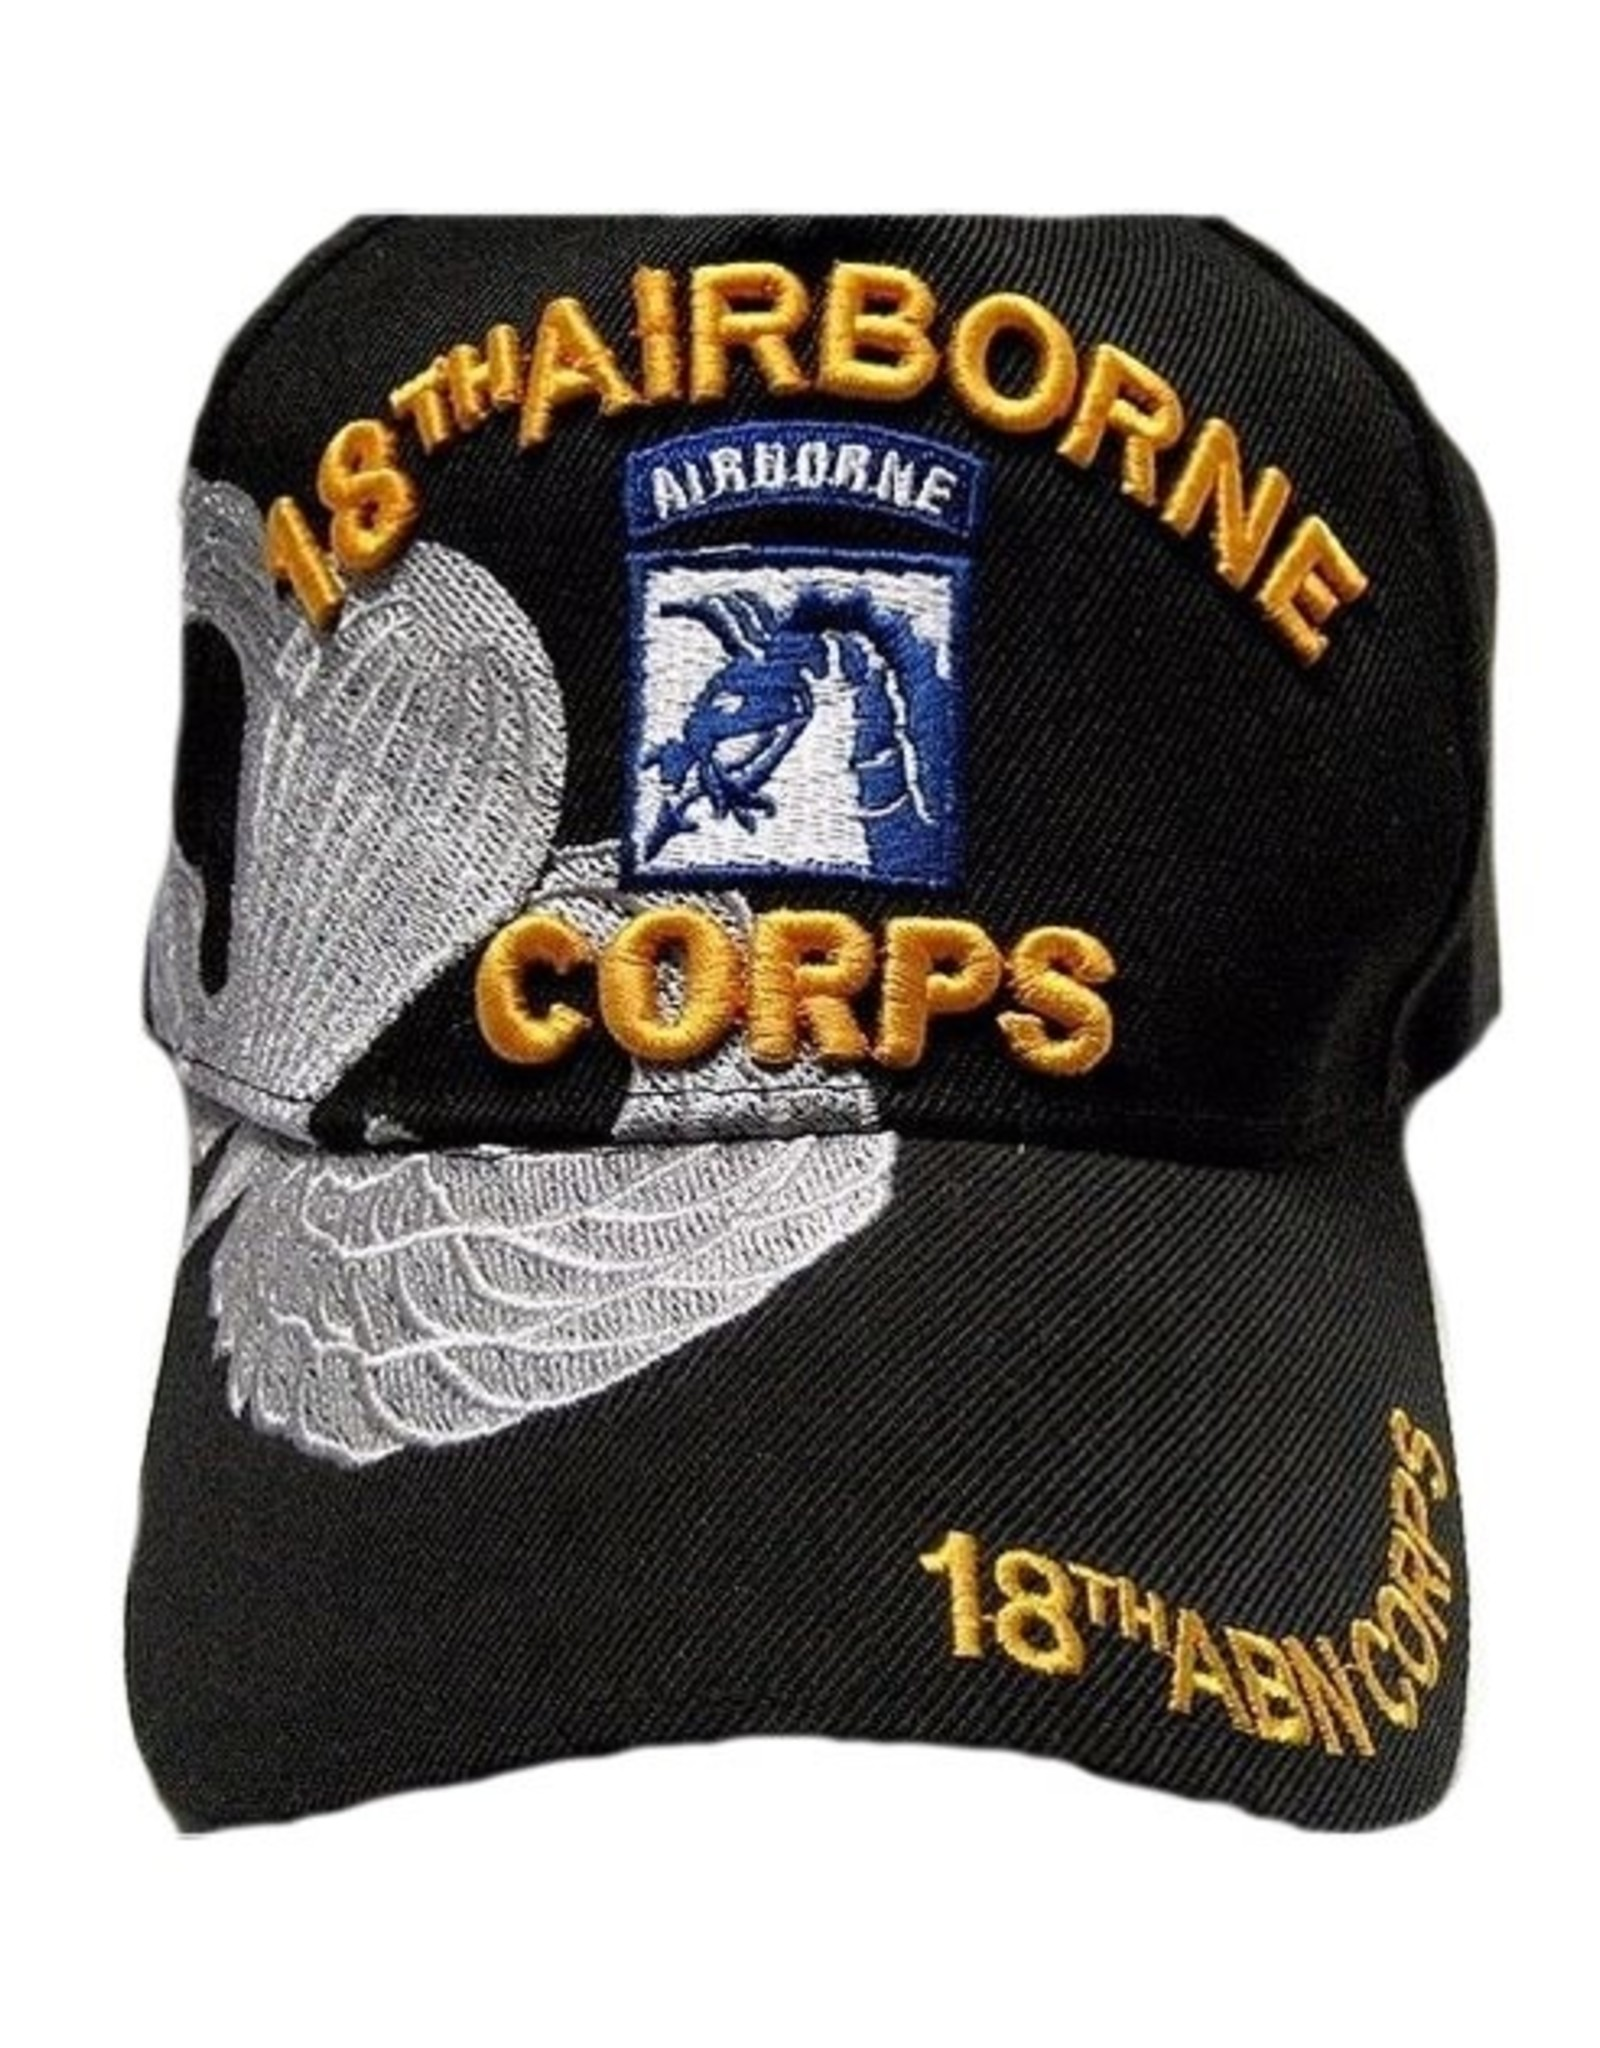 MidMil Army 18th Airborne Corps Hat with Emblem and  Parachute Wing Over Shadow Black